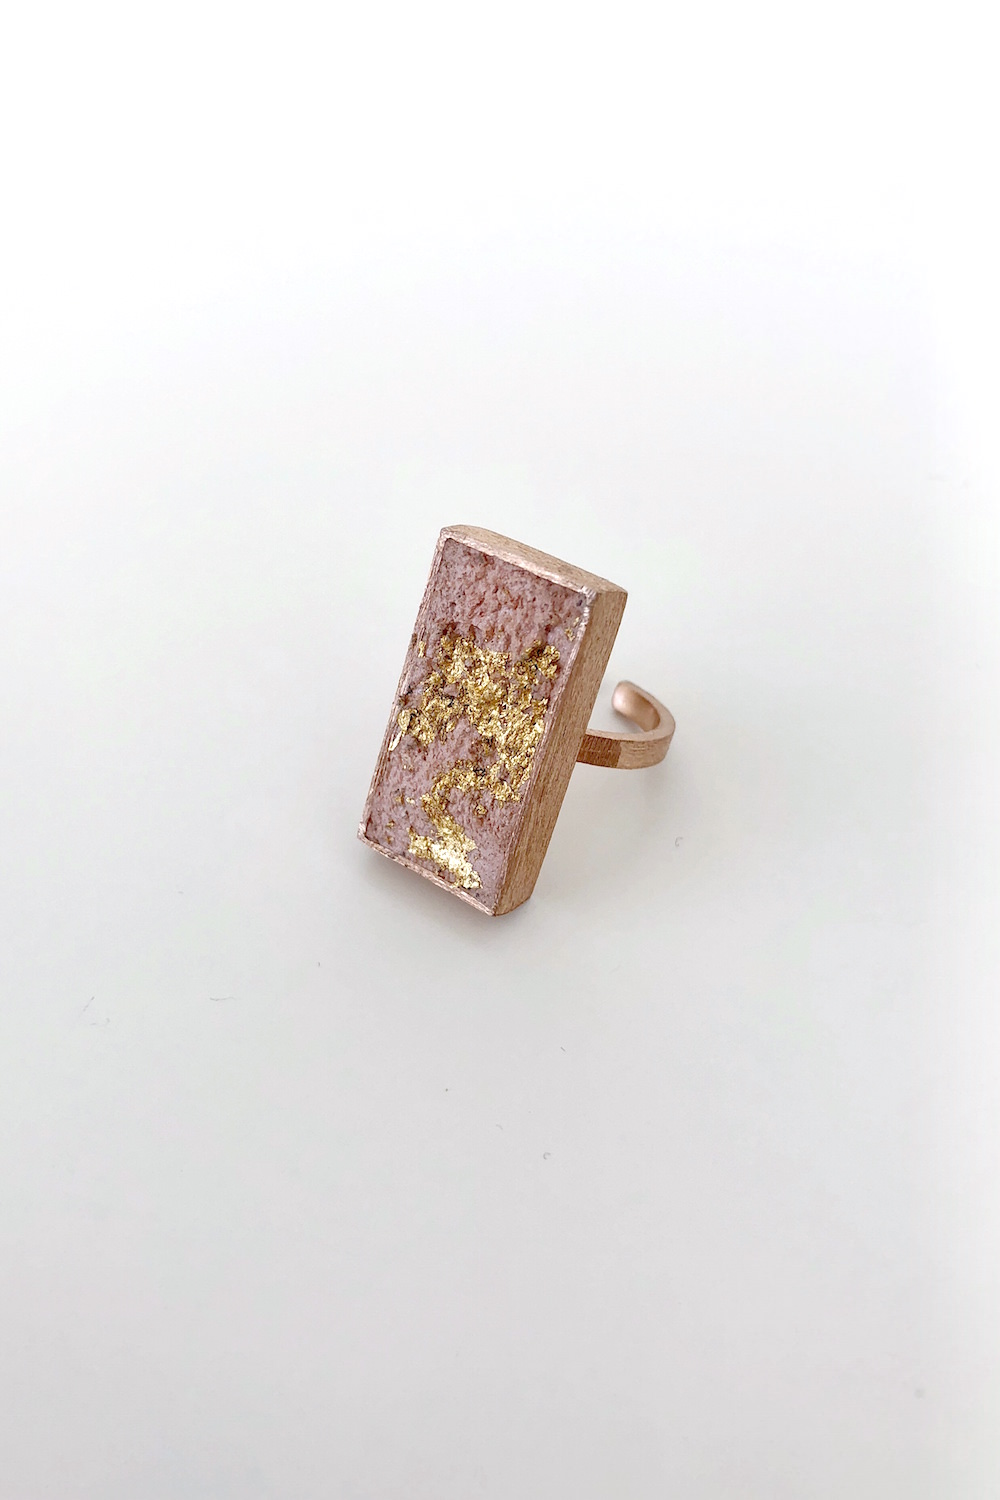 Ring in Rose Gold and Pink Cement